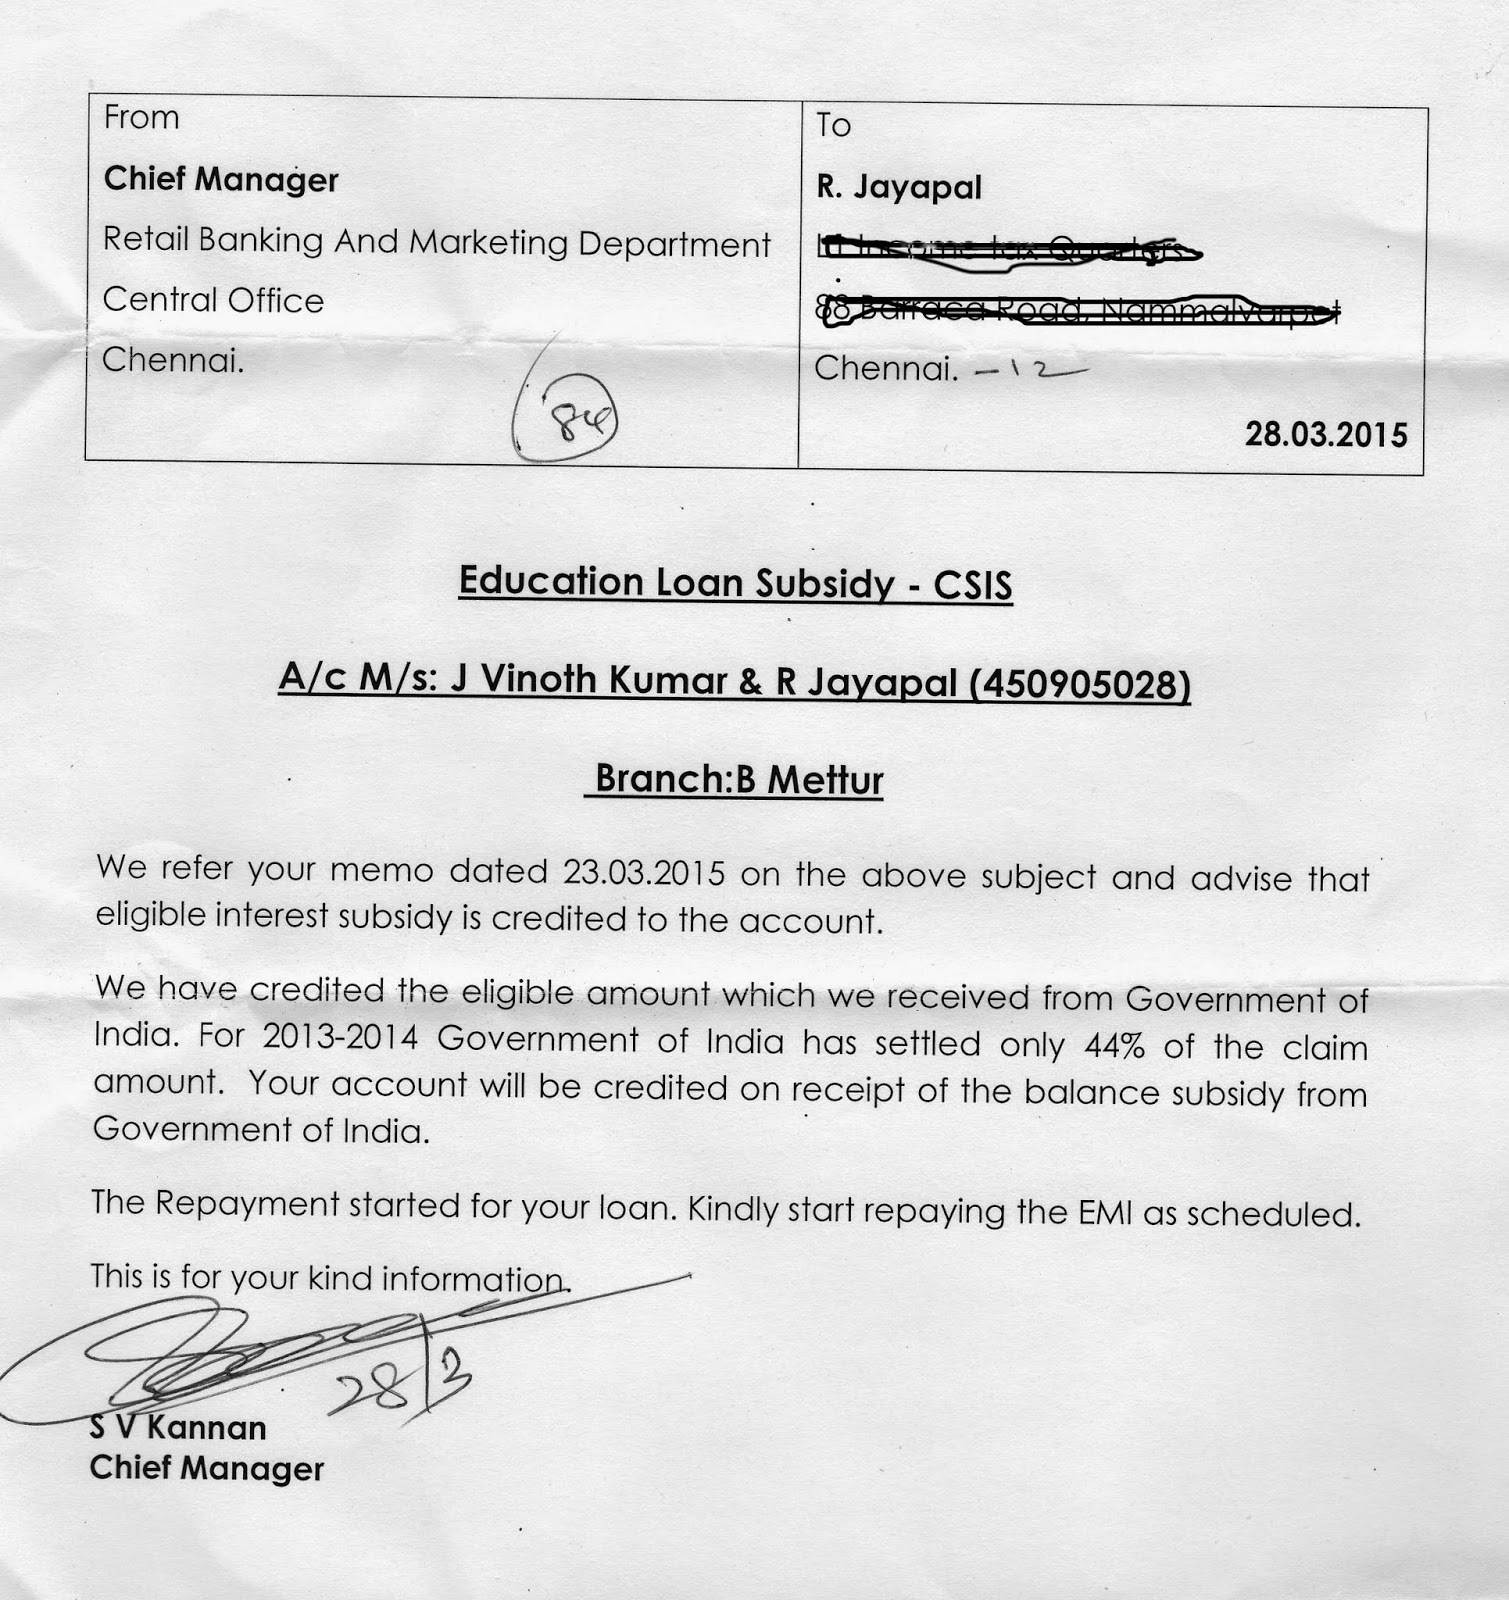 Sample letter of an application to the bank manager to unblock ATM card